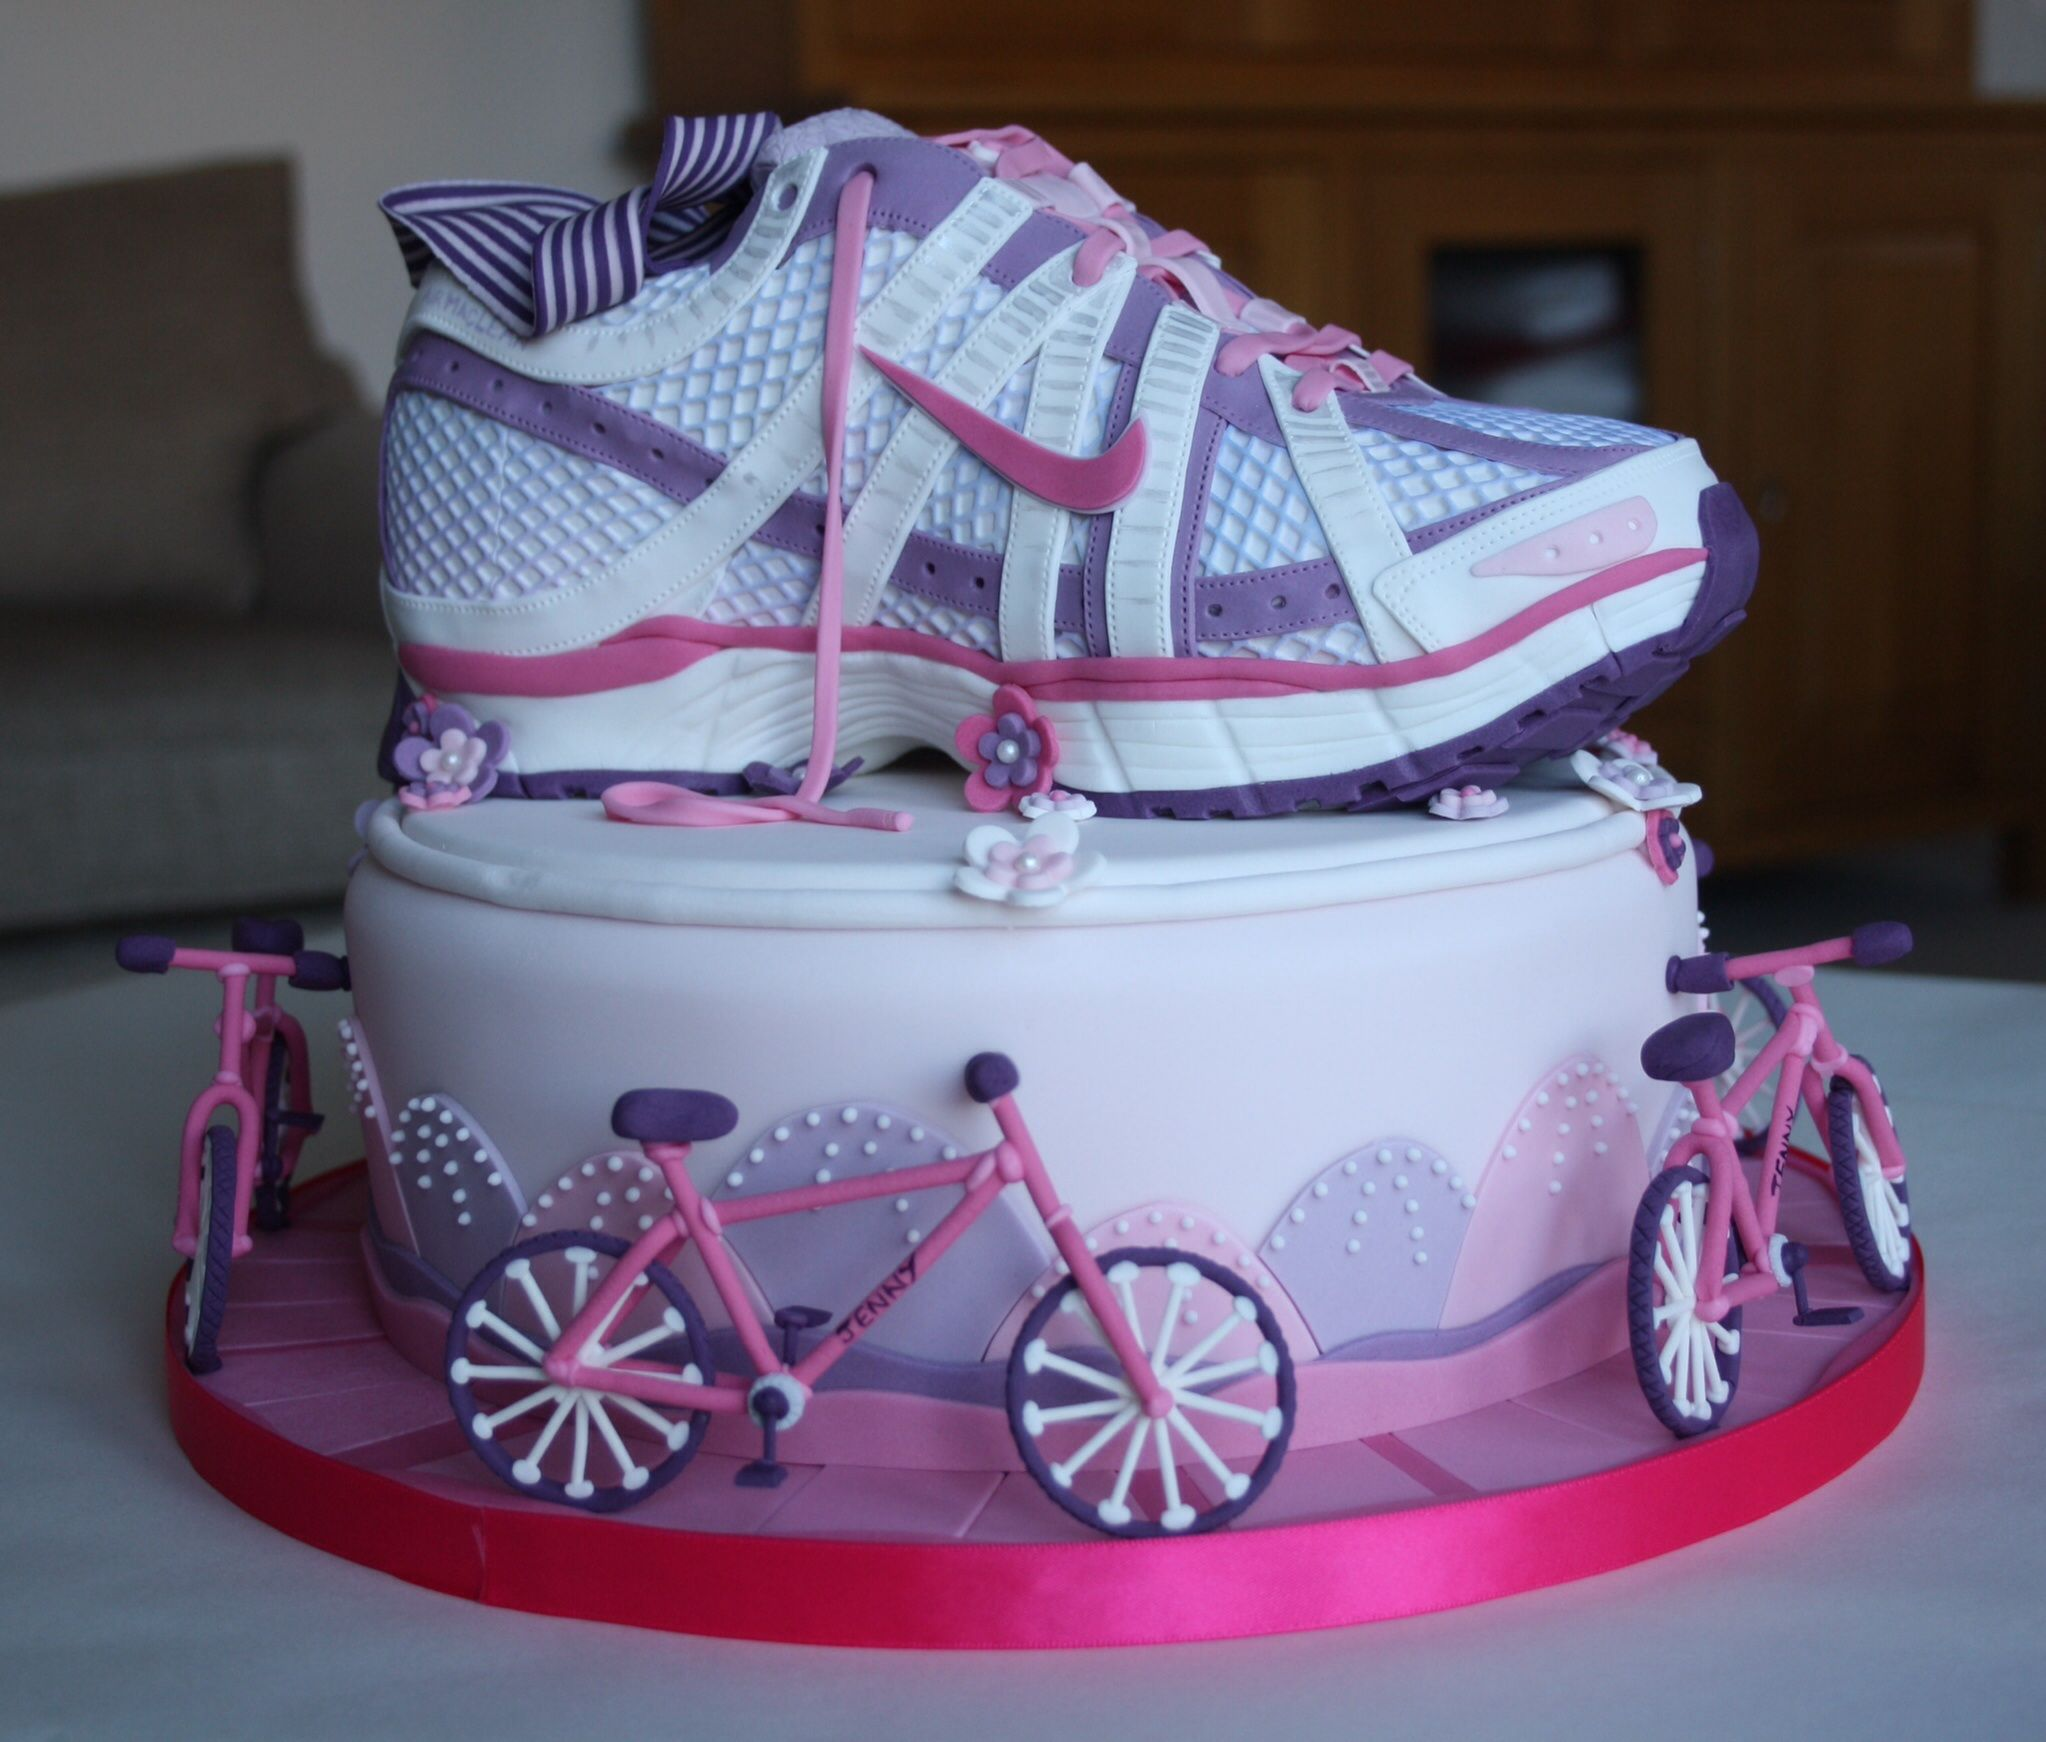 I made this ladies running shoe / trainer cake for my friend's 40th  birthday. It